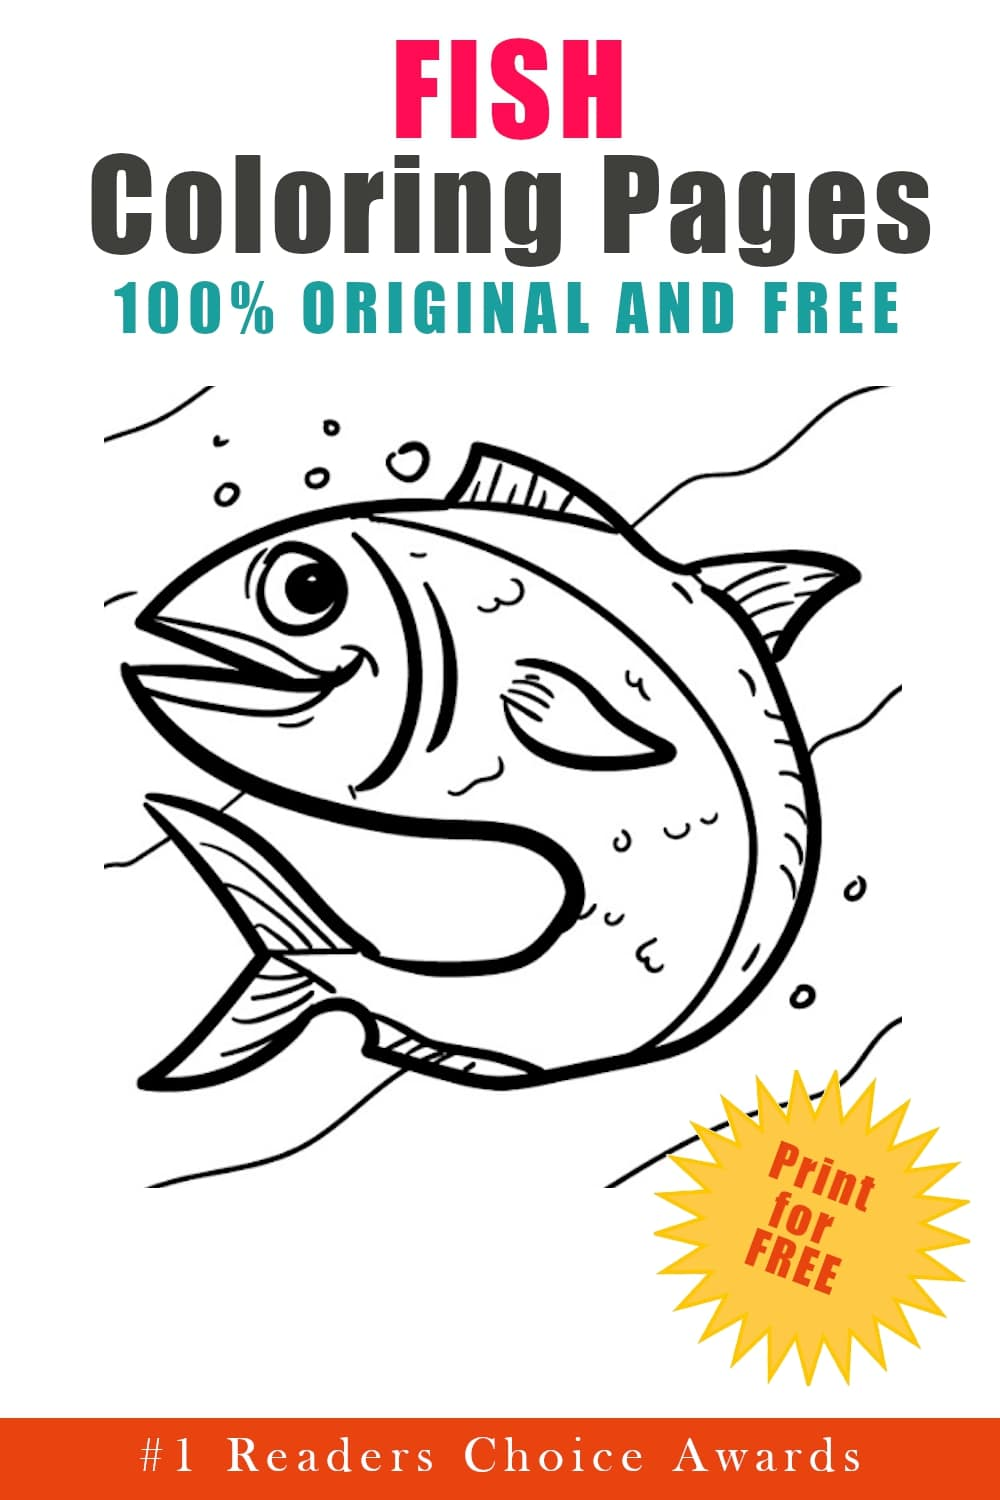 original and free fish coloring pages free download